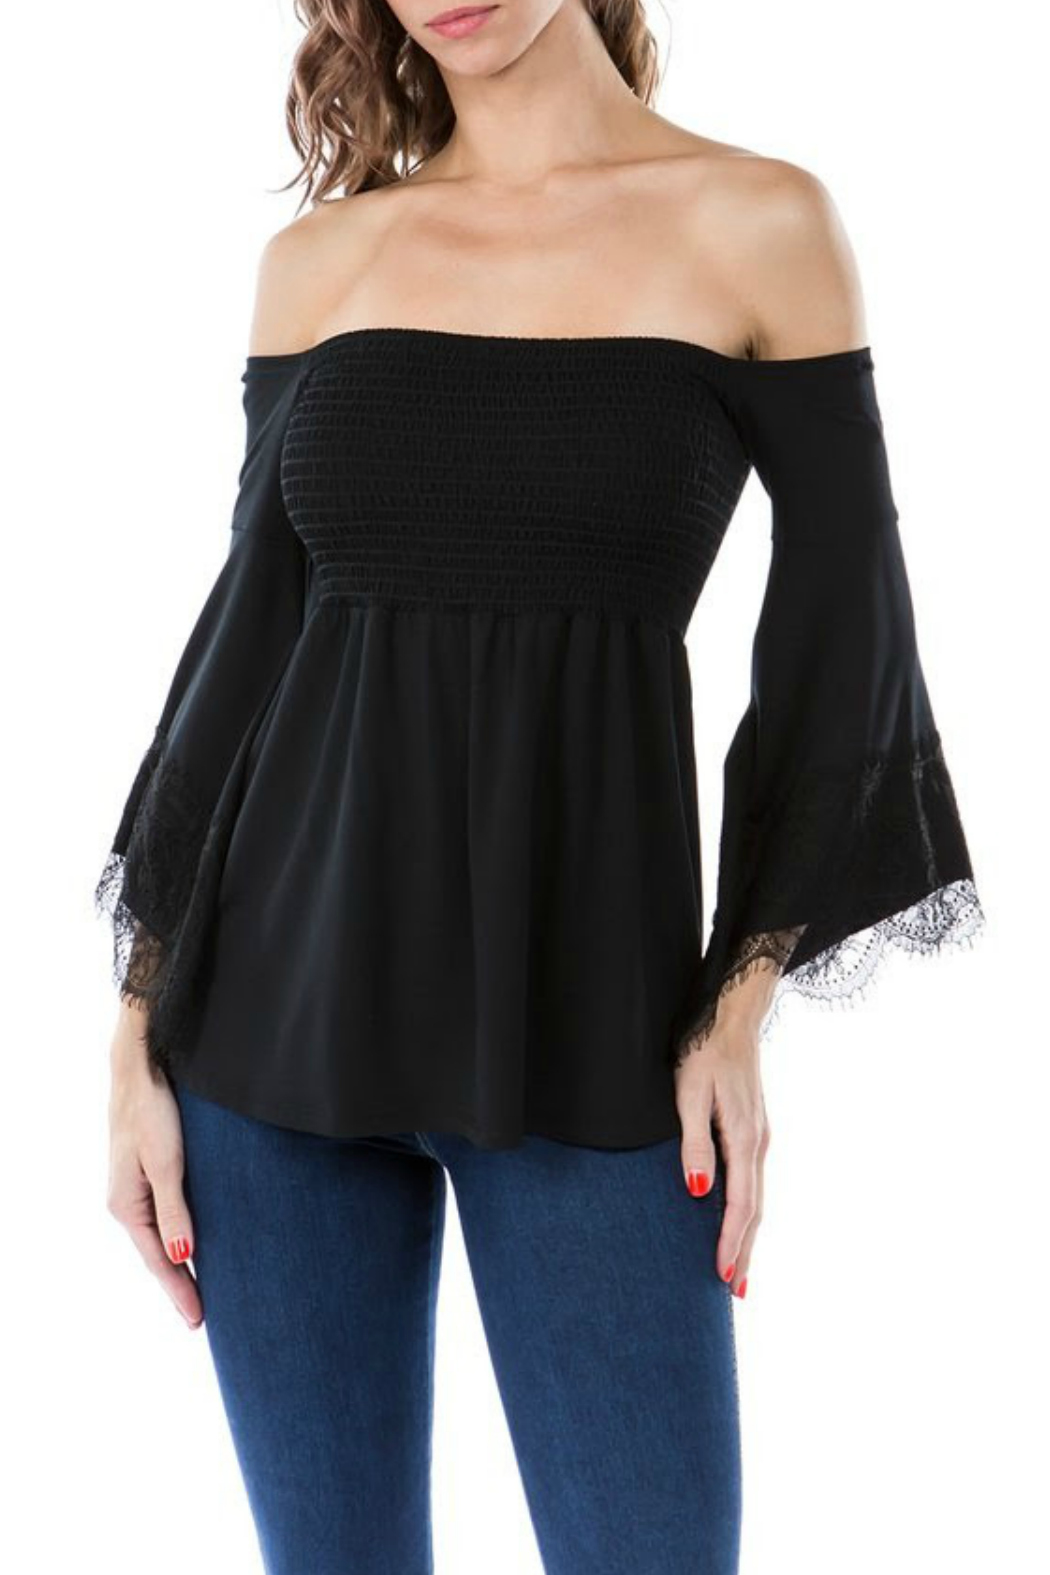 Vava by Joy Hahn Smocked Lacey Bell Sleeve Top - Main Image